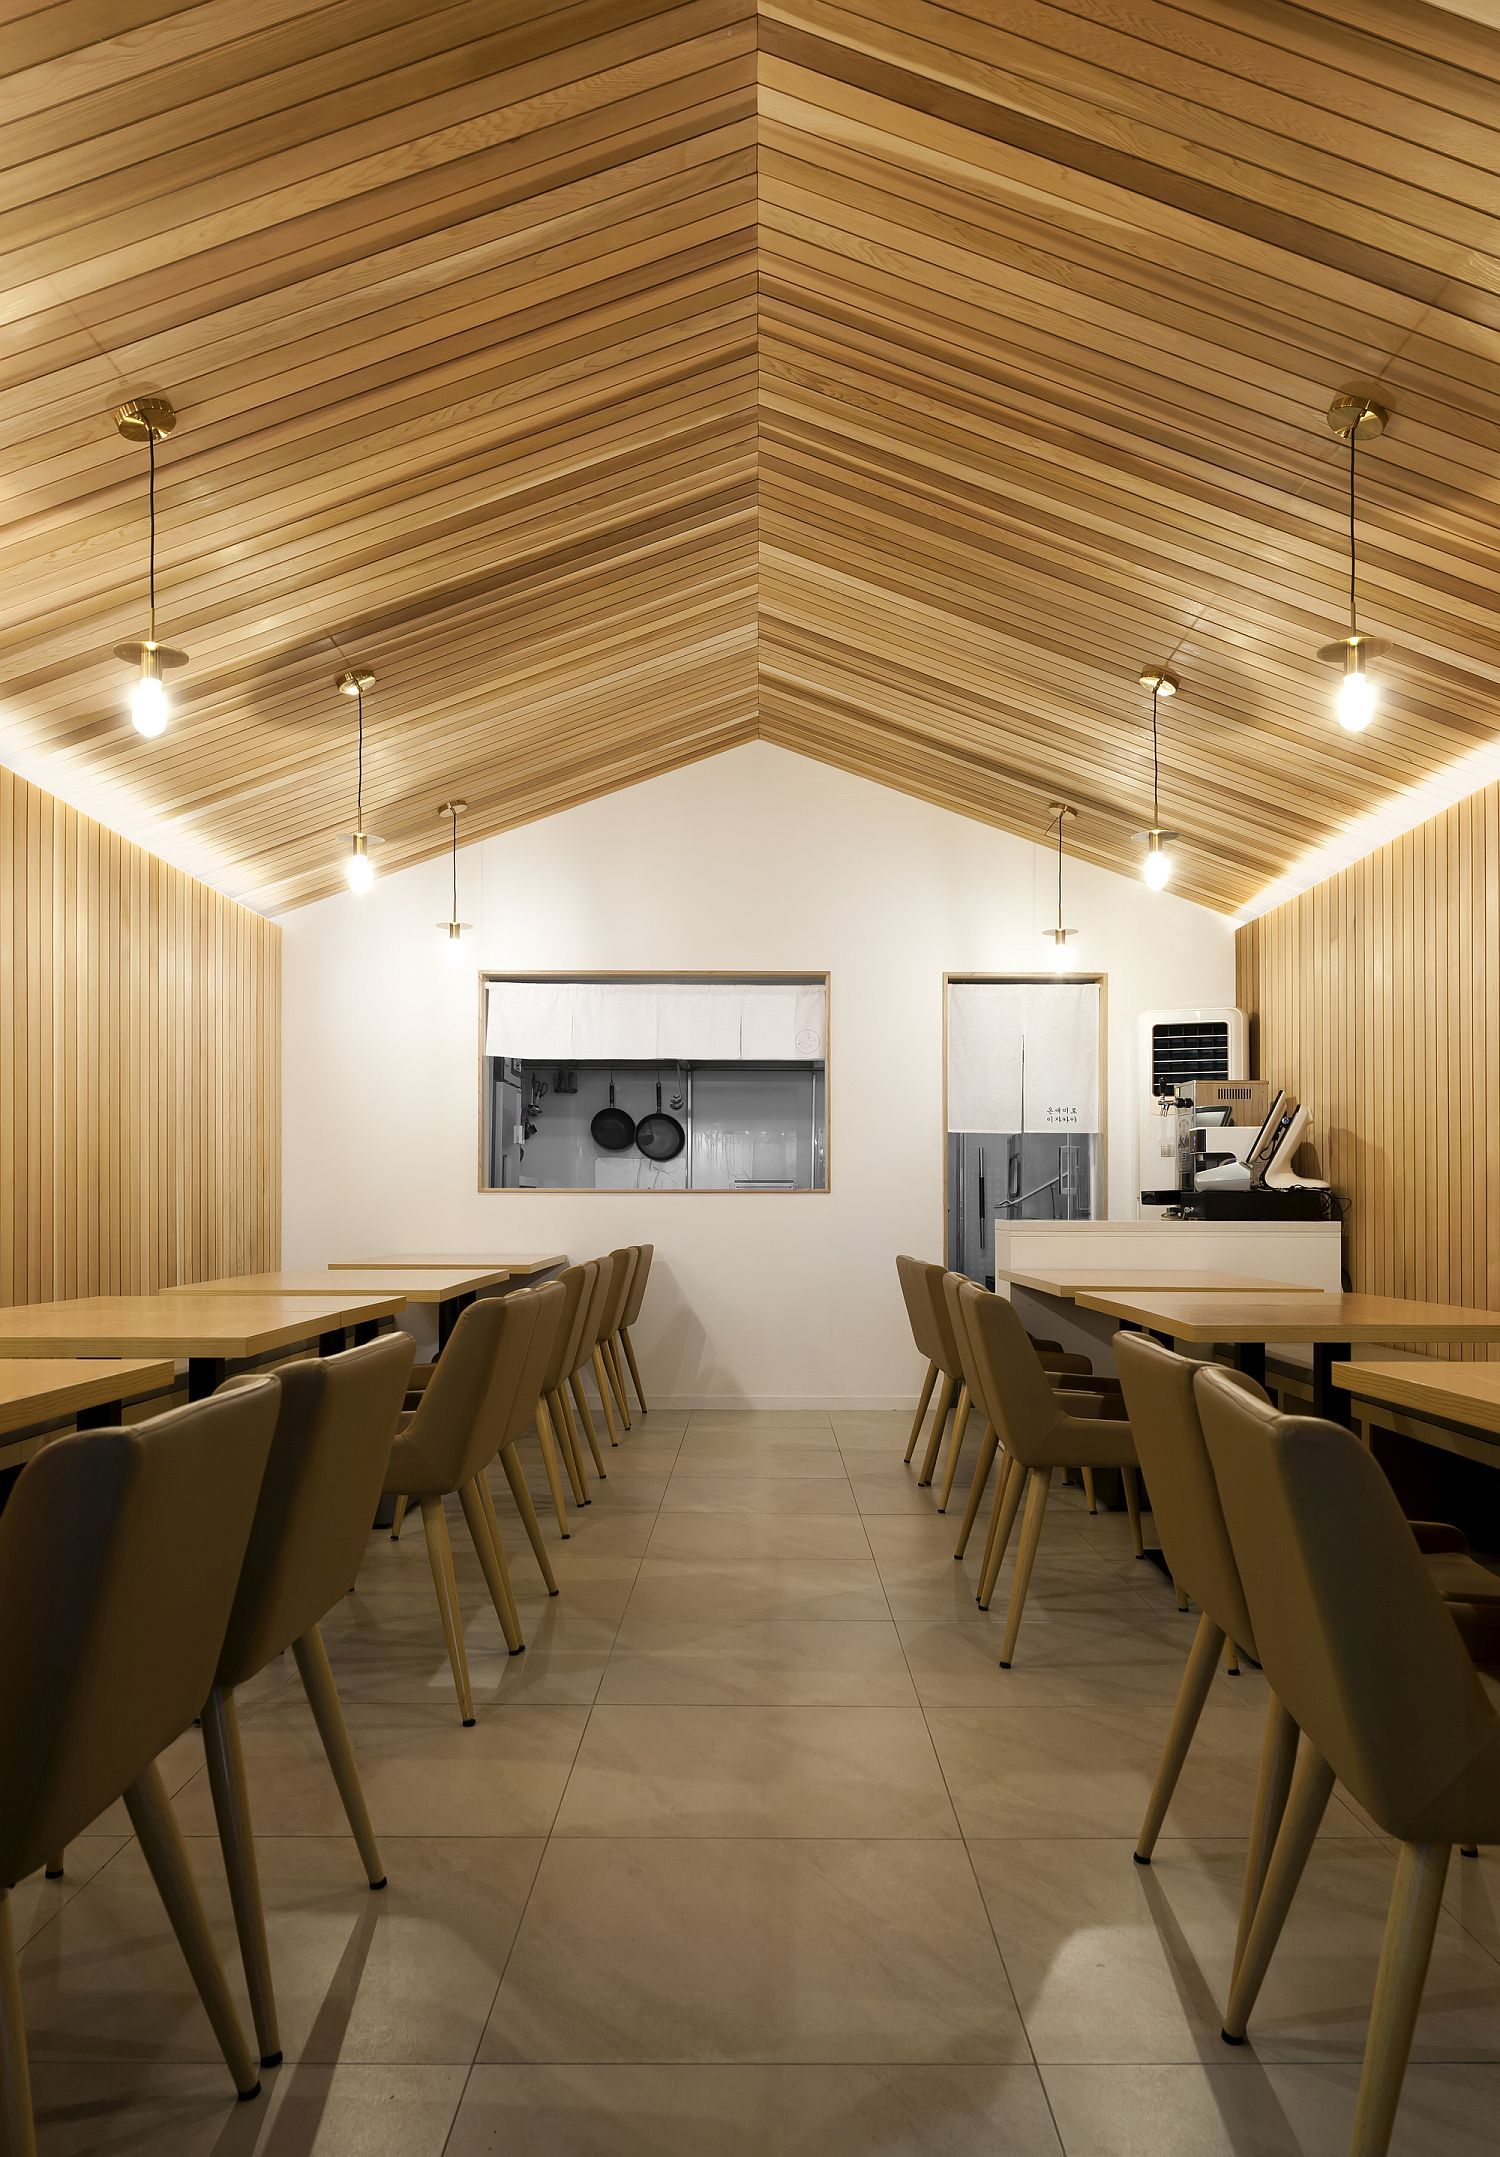 Urban Cabin Small Space Conscious Restaurant With Cozy Modern